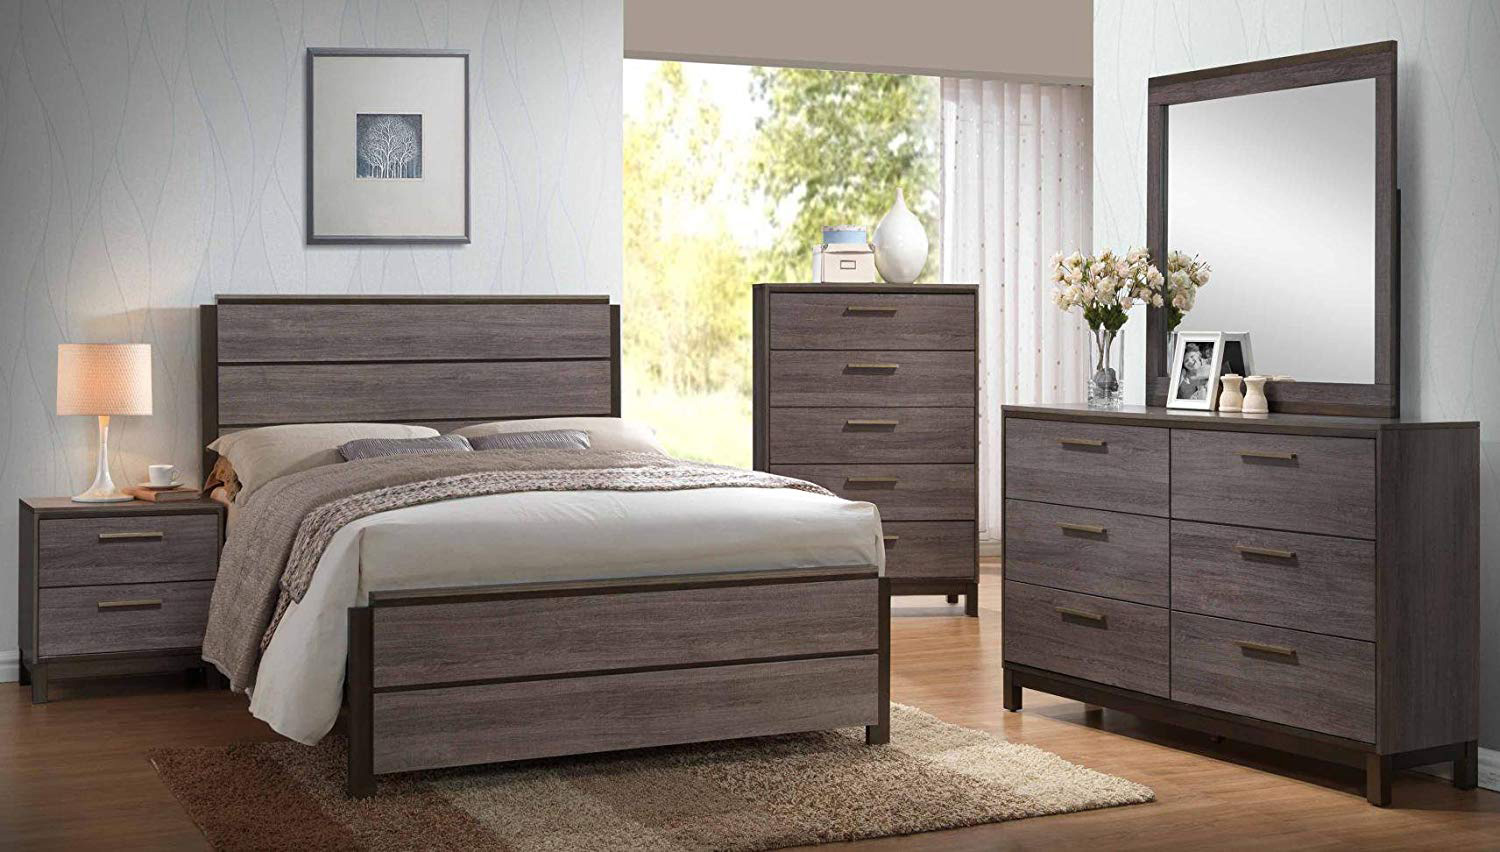 5 Best-Selling Bedroom Furniture Sets on Amazon | Real ...